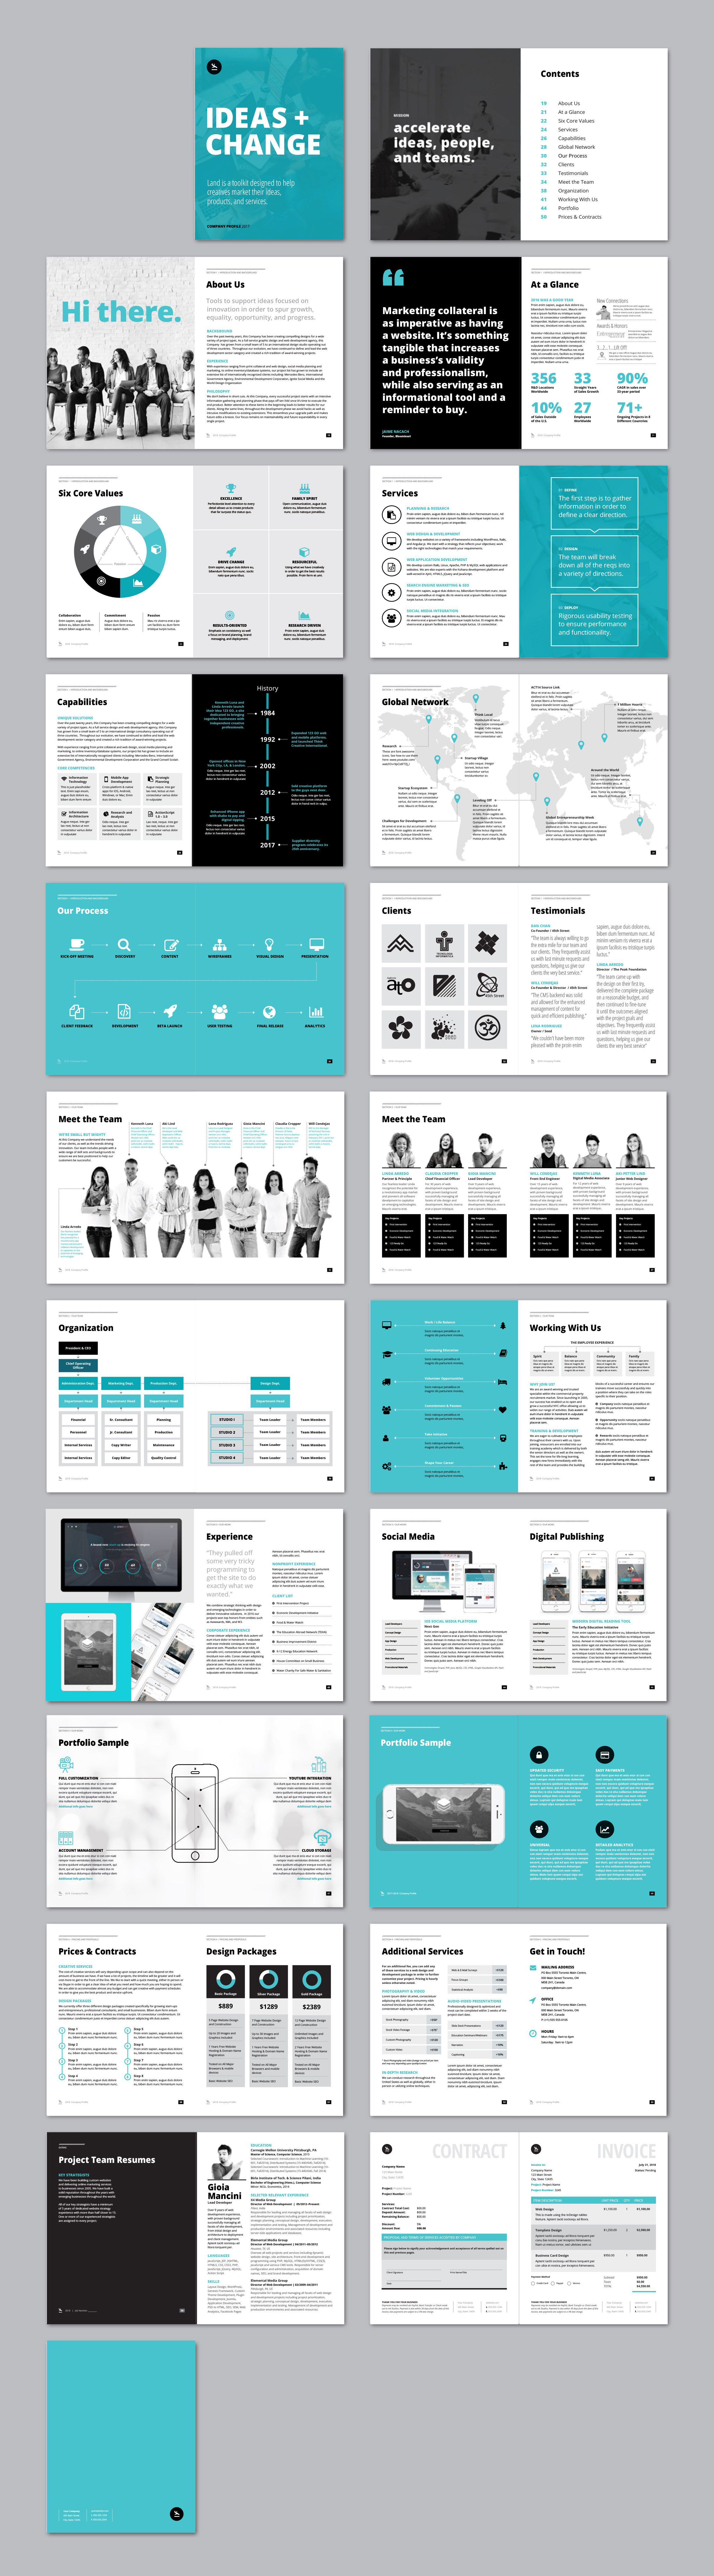 #Company #Profile & #Overview #Template 	#a4 #about #us #agency #Agency #booklet #brand #brief #business #proposal #Company #Profile #corporate All Pages Download here: https://graphicriver.net/item/company-profile-overview-template/19963836?ref=alena994